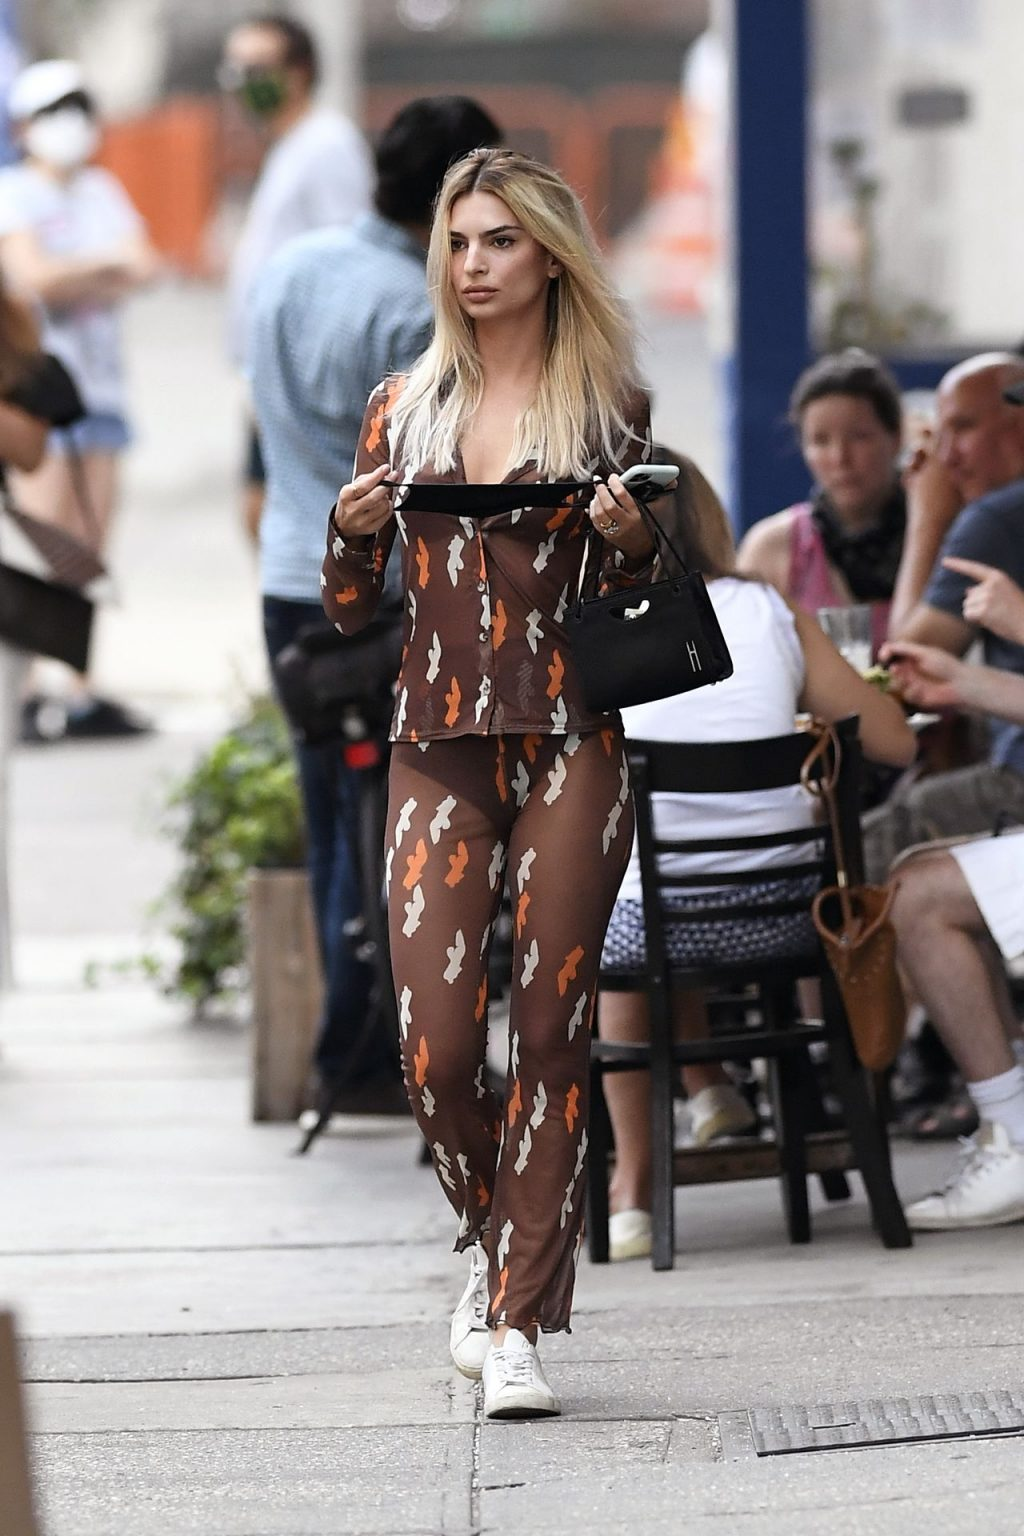 Sexy Emily Ratajkowski Steps Out in a Striking Sheer Outfit (42 Photos)